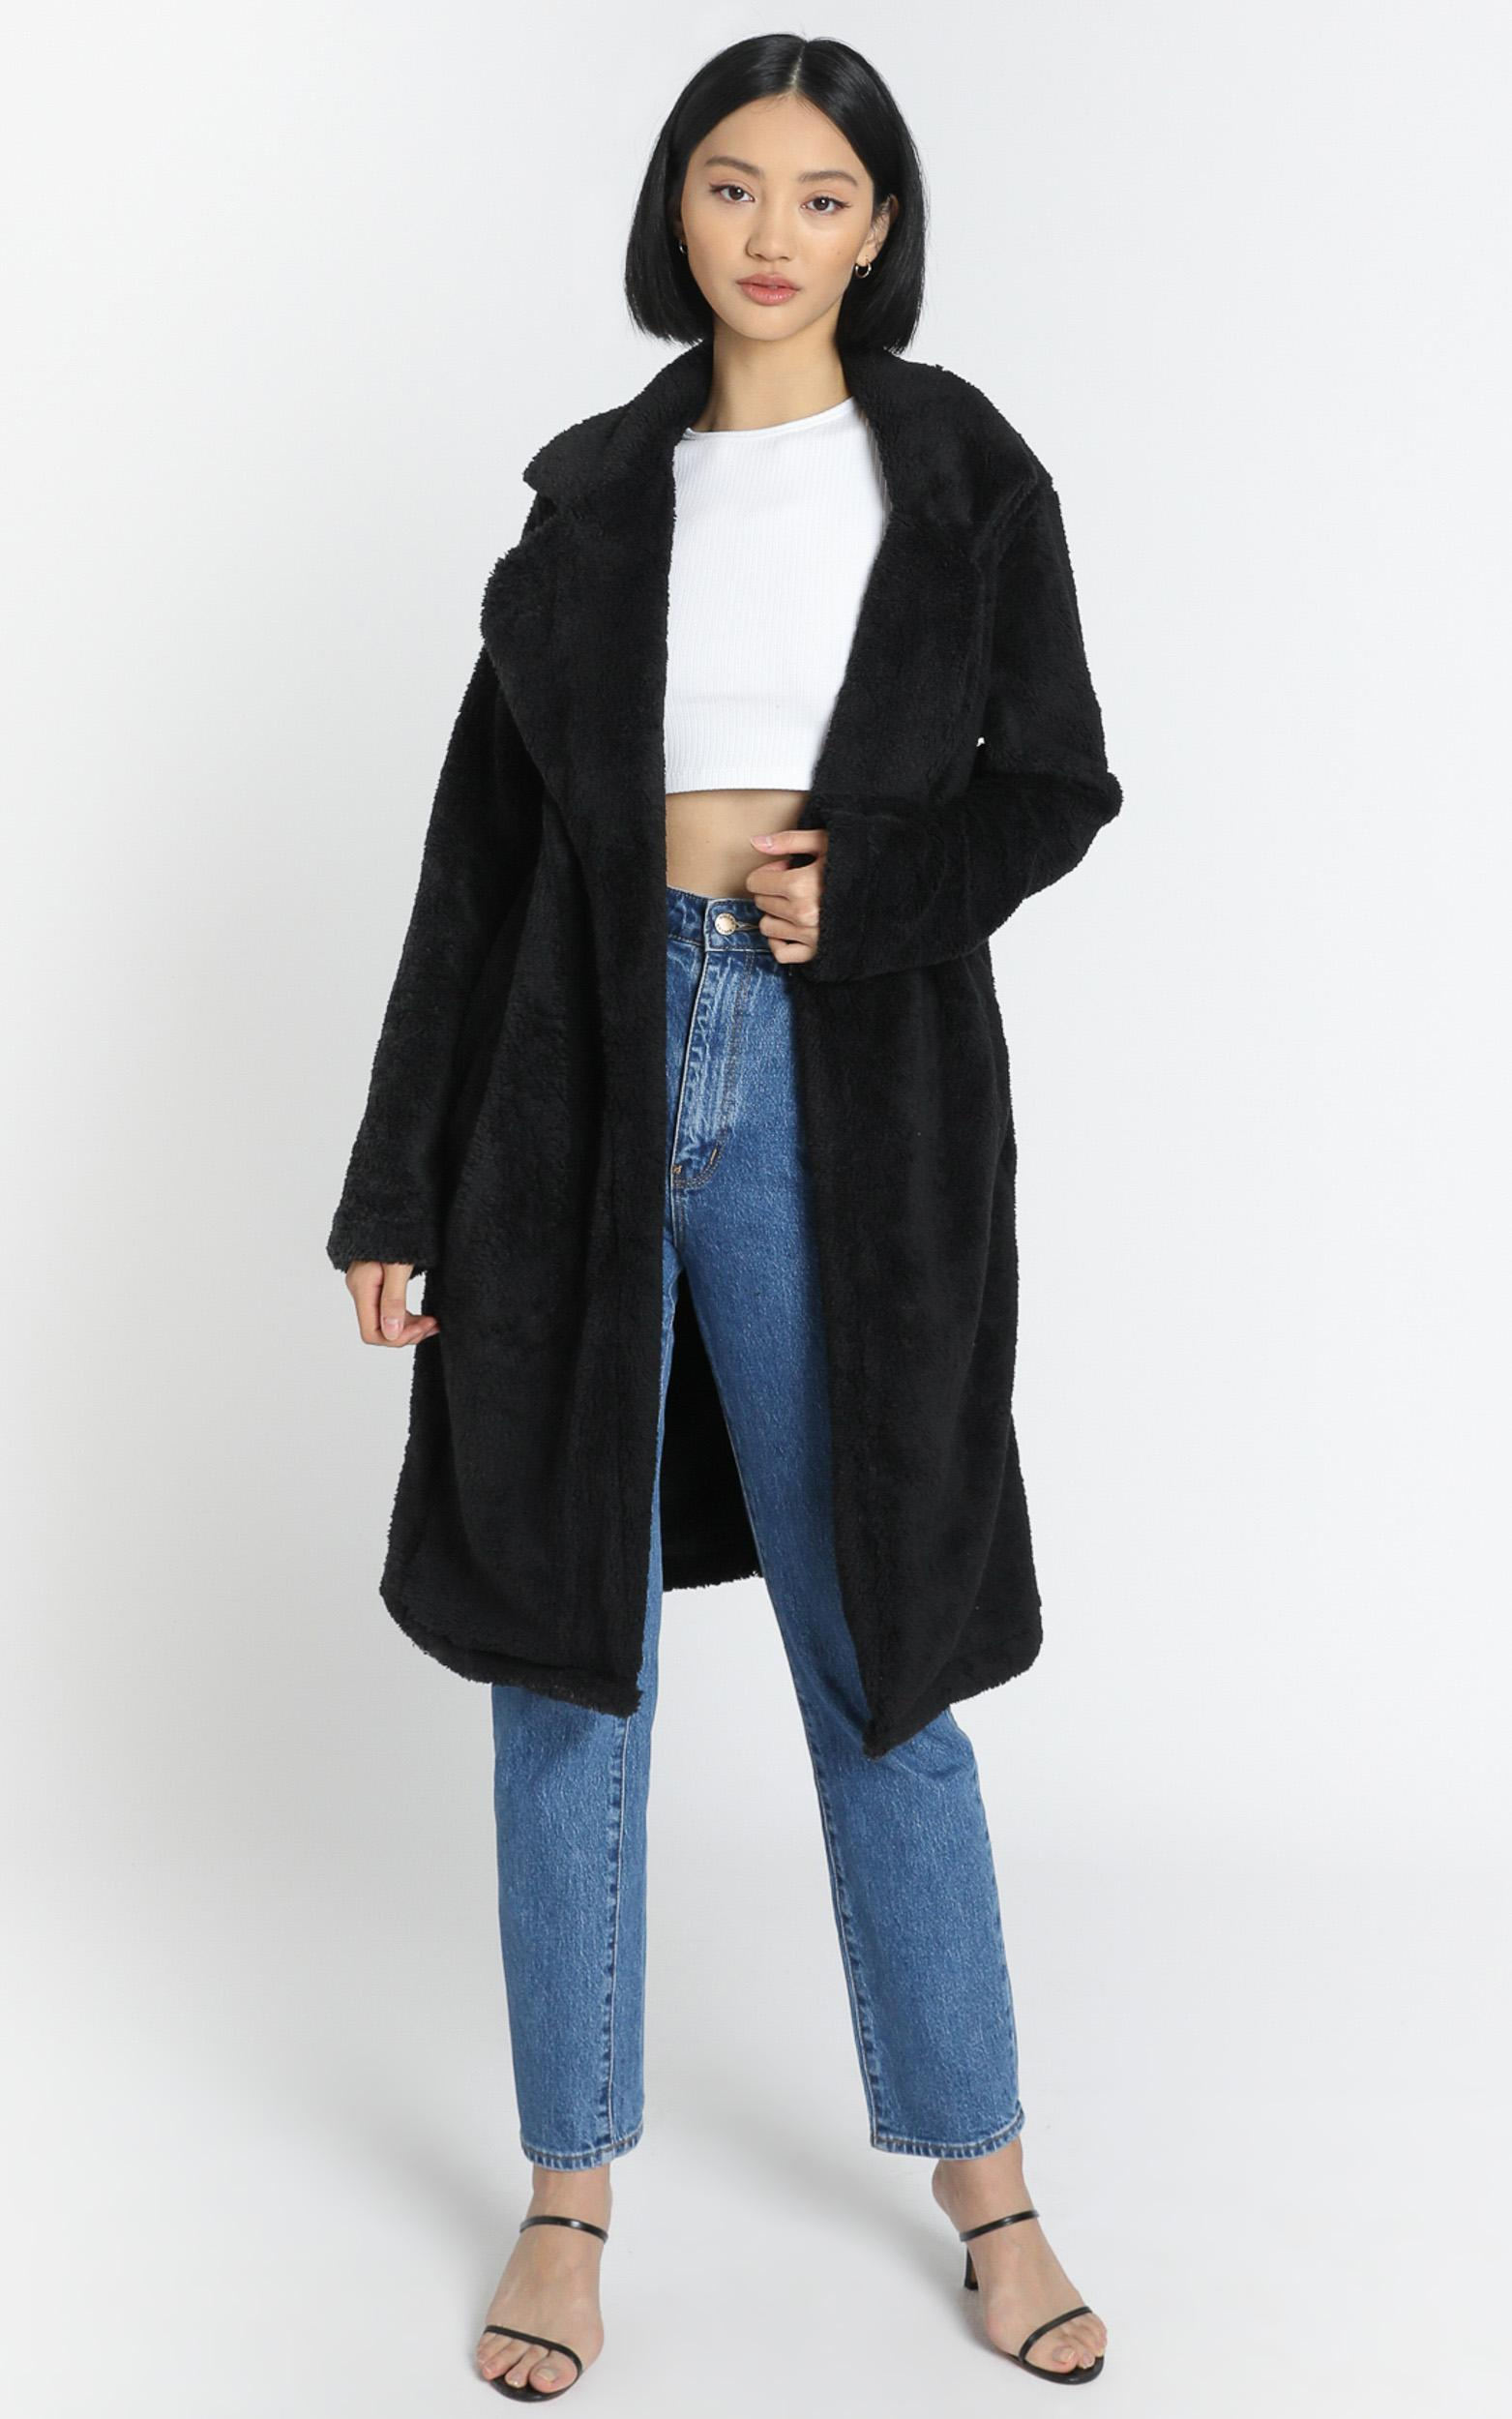 Adairia Coat in Black - 6 (XS), Black, hi-res image number null